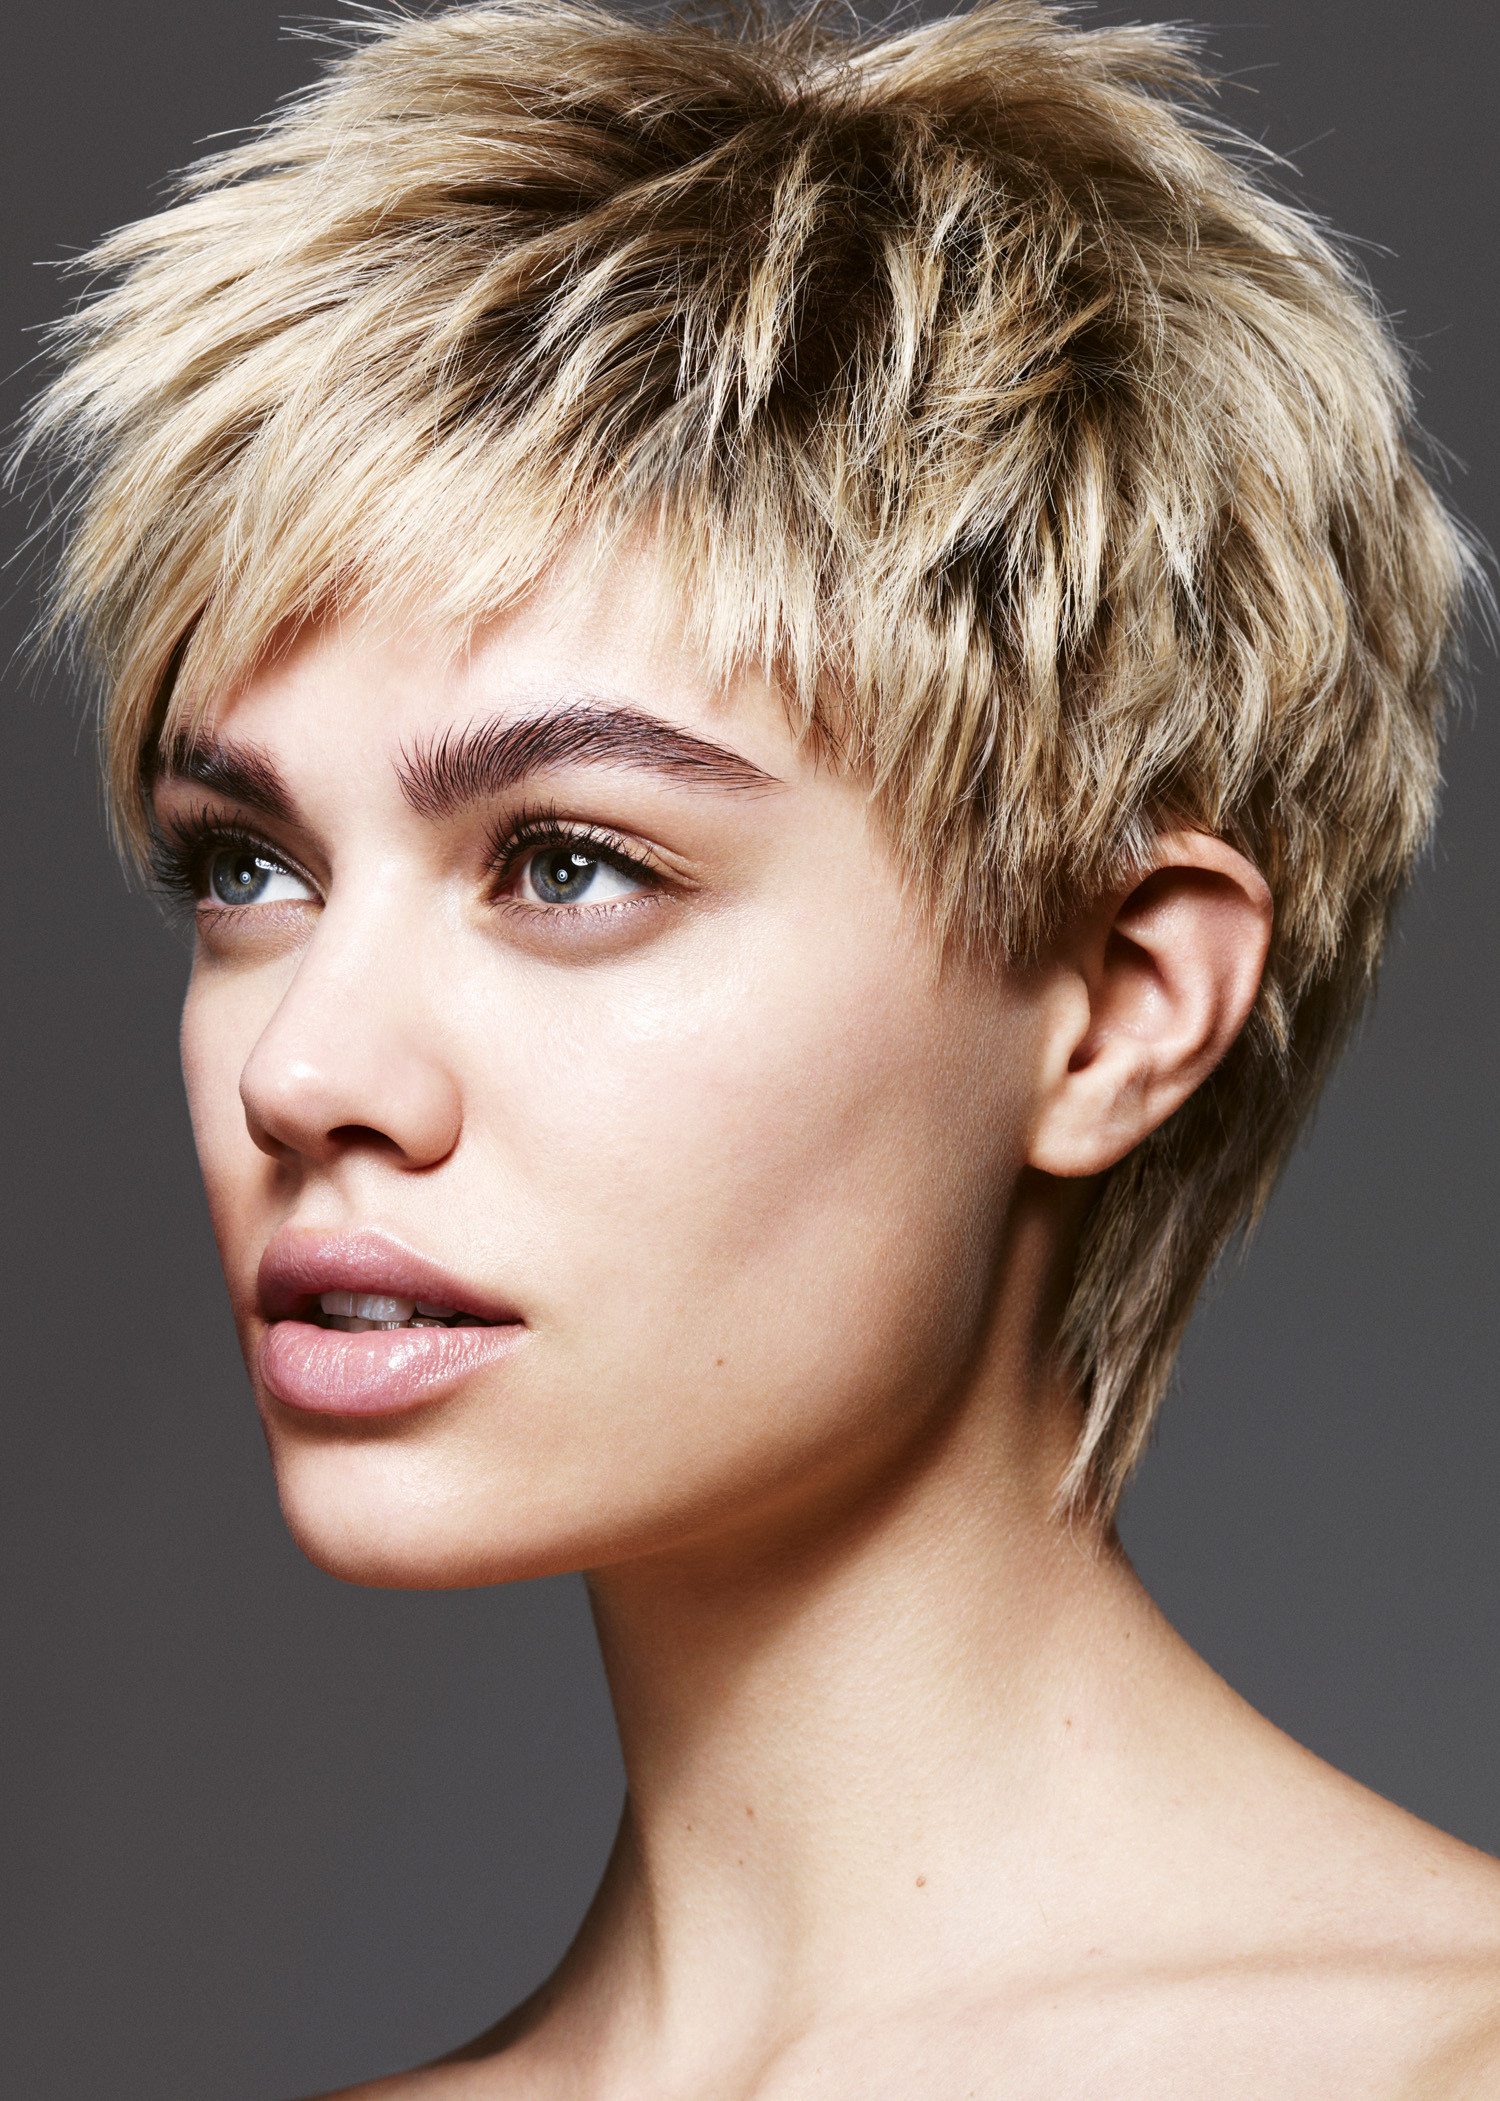 Short Textured Haircuts  Short textured haircuts Hairstyle for women & man